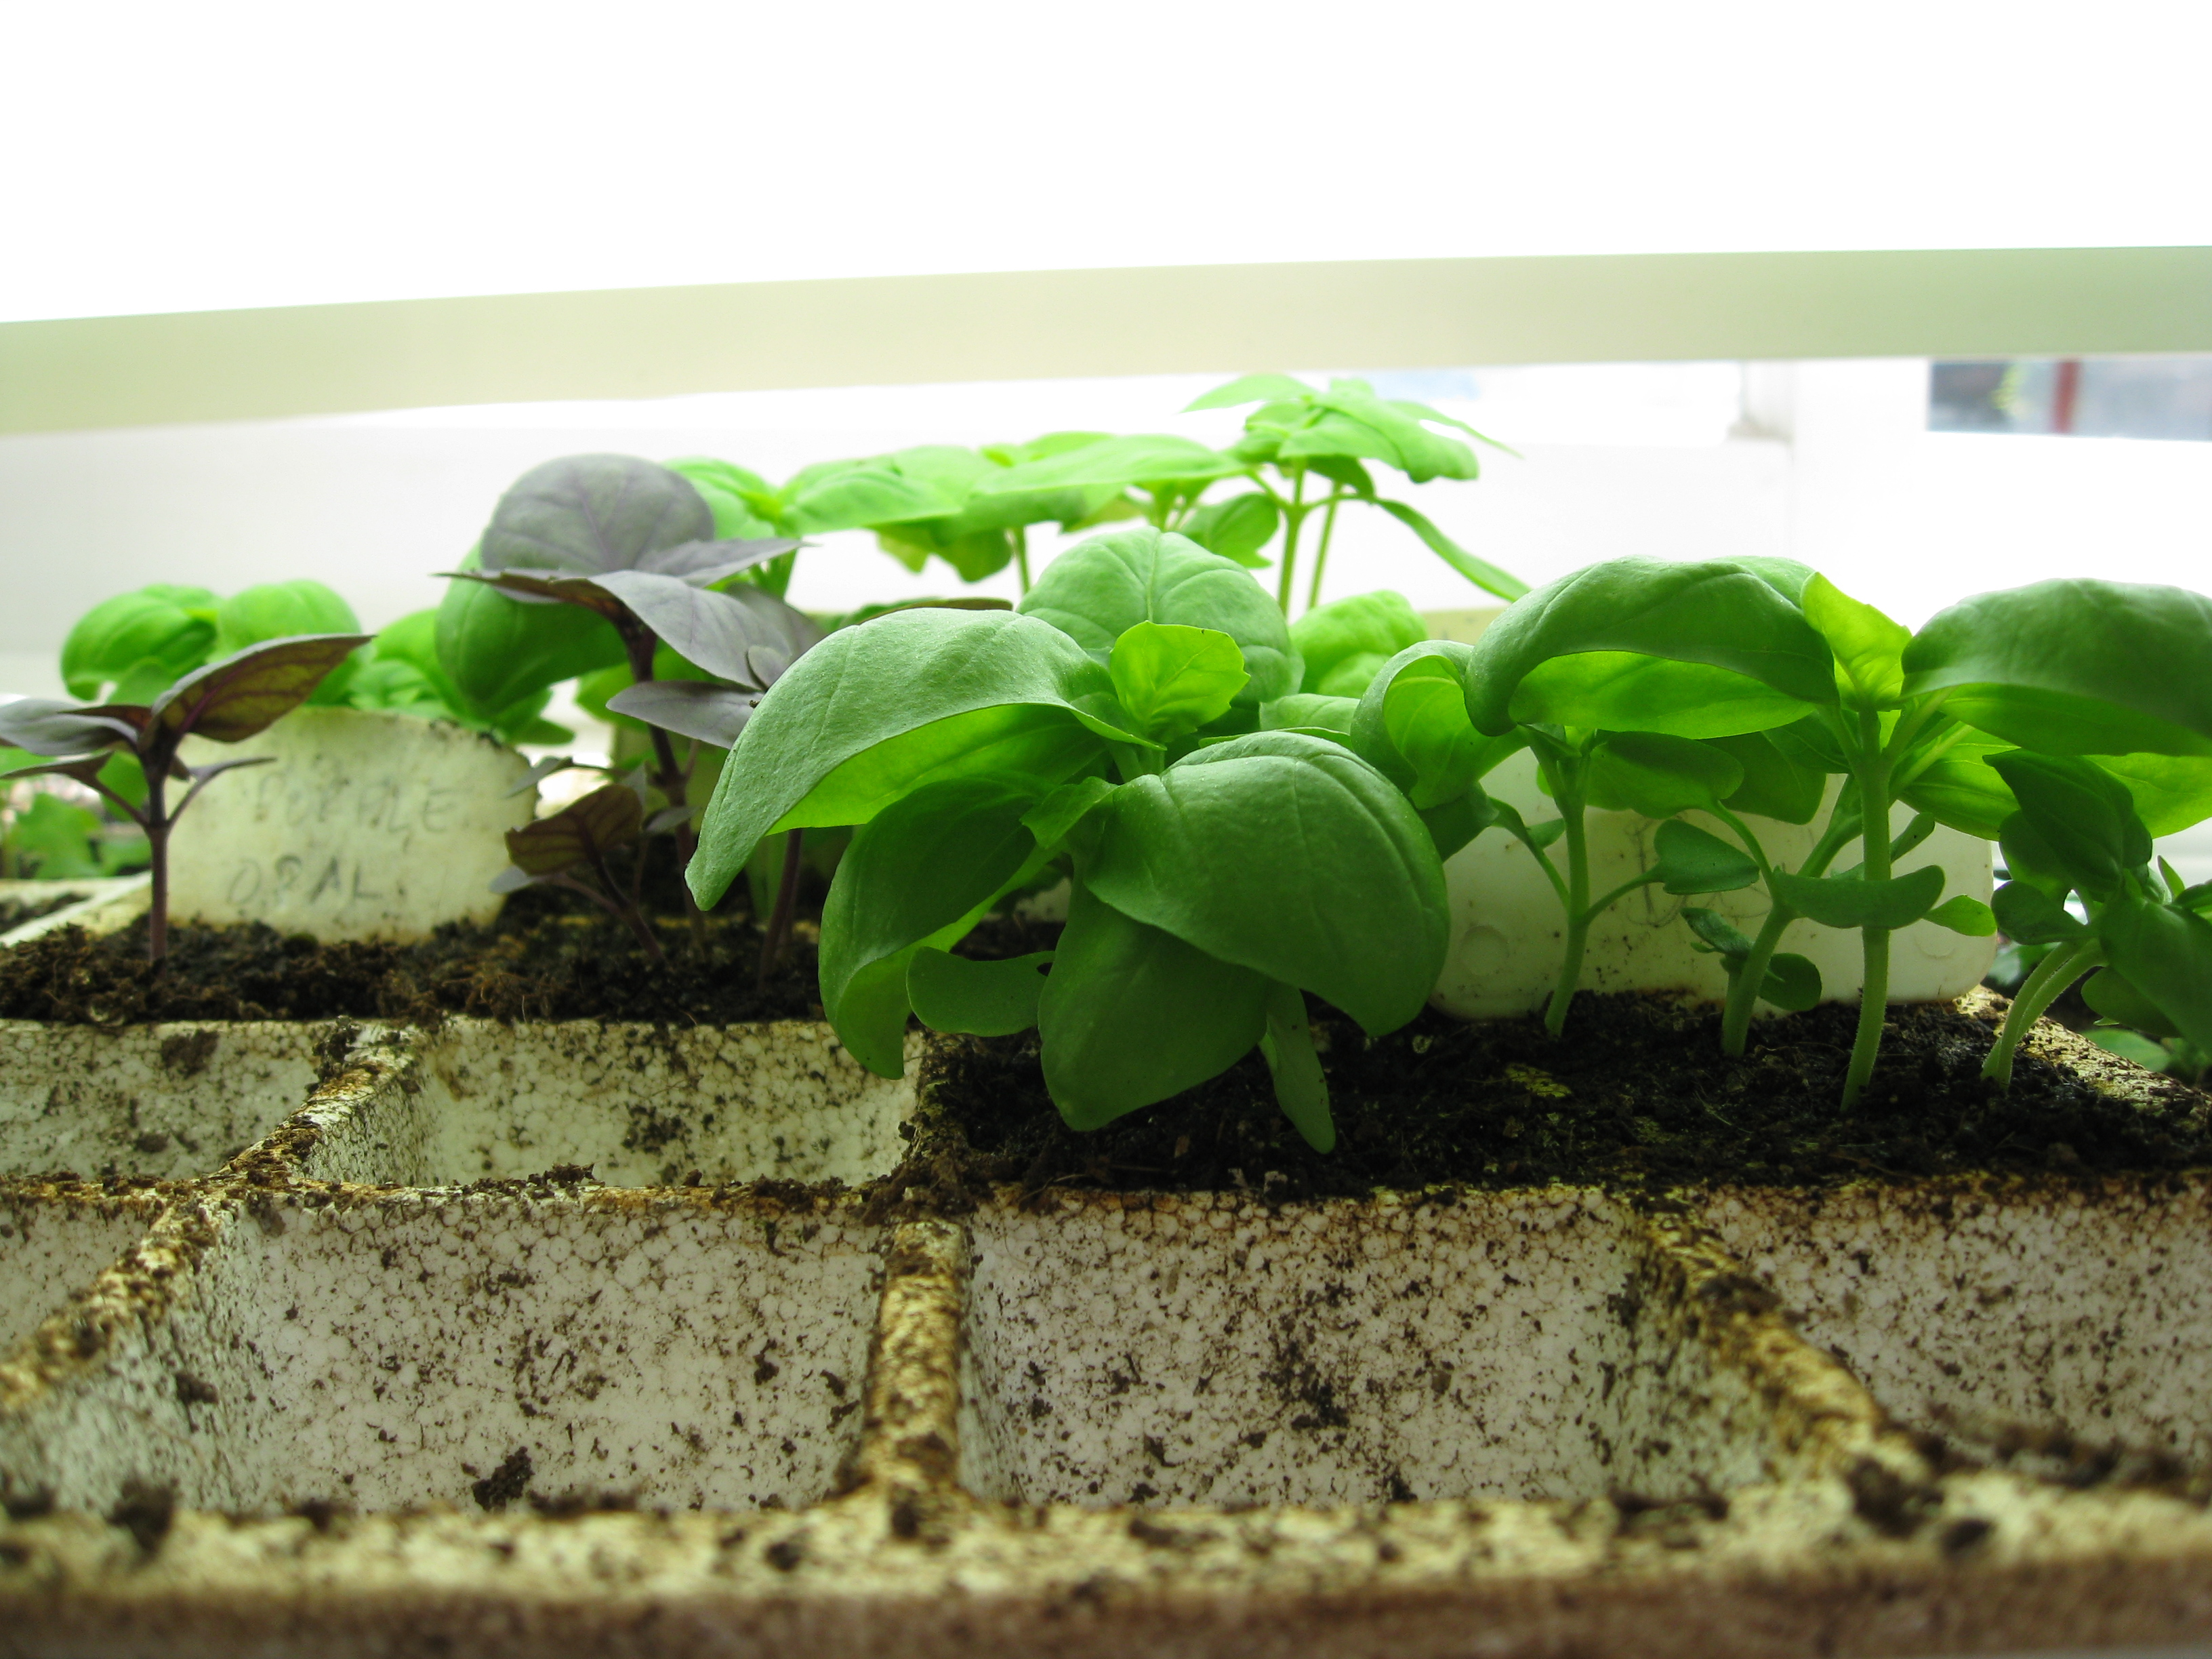 4 types of basil (and 2 different strains of 1 cultivar) sit beautifully in their seed tray.